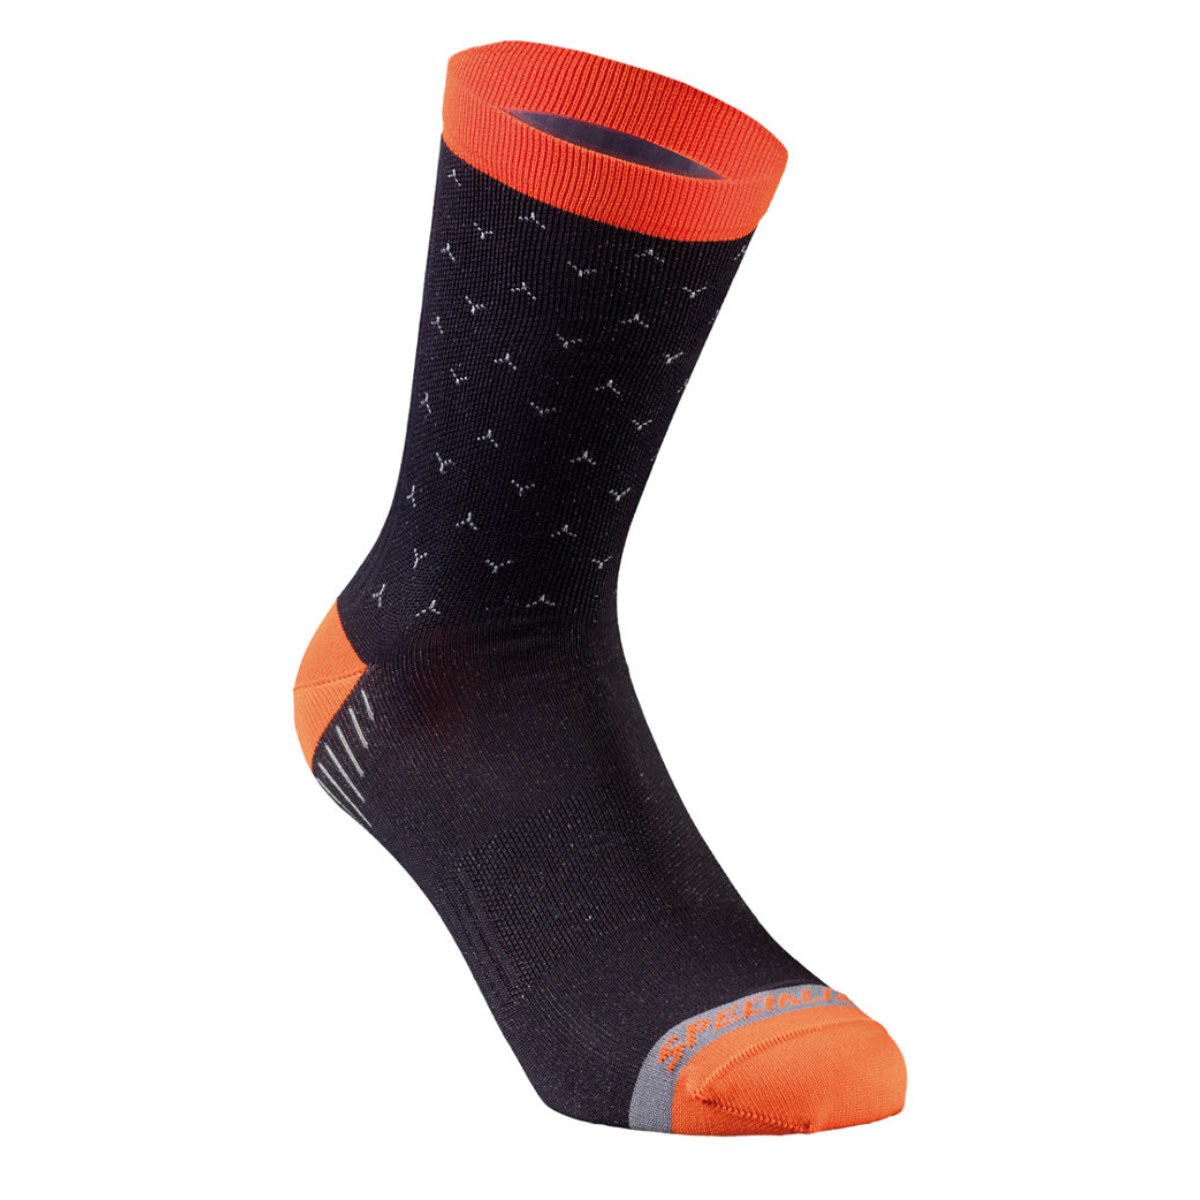 CHAUSSETTE SPECIALIZED LINKS UNISEXE